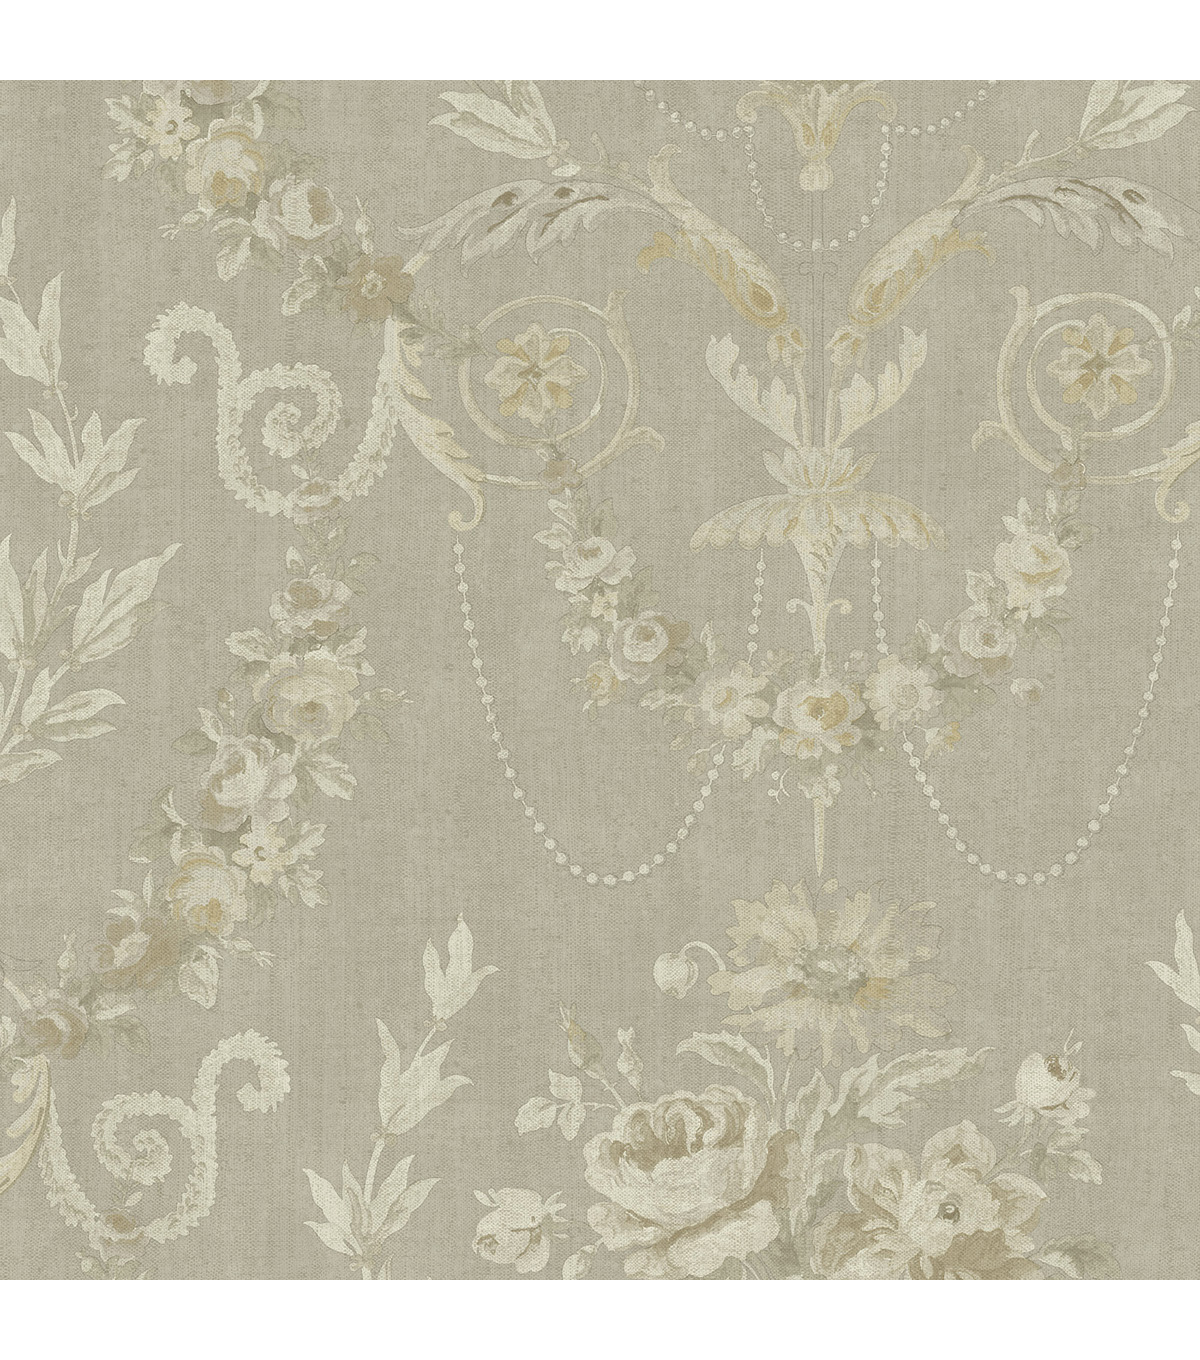 Grey Rose Urn Wallpaper Sample